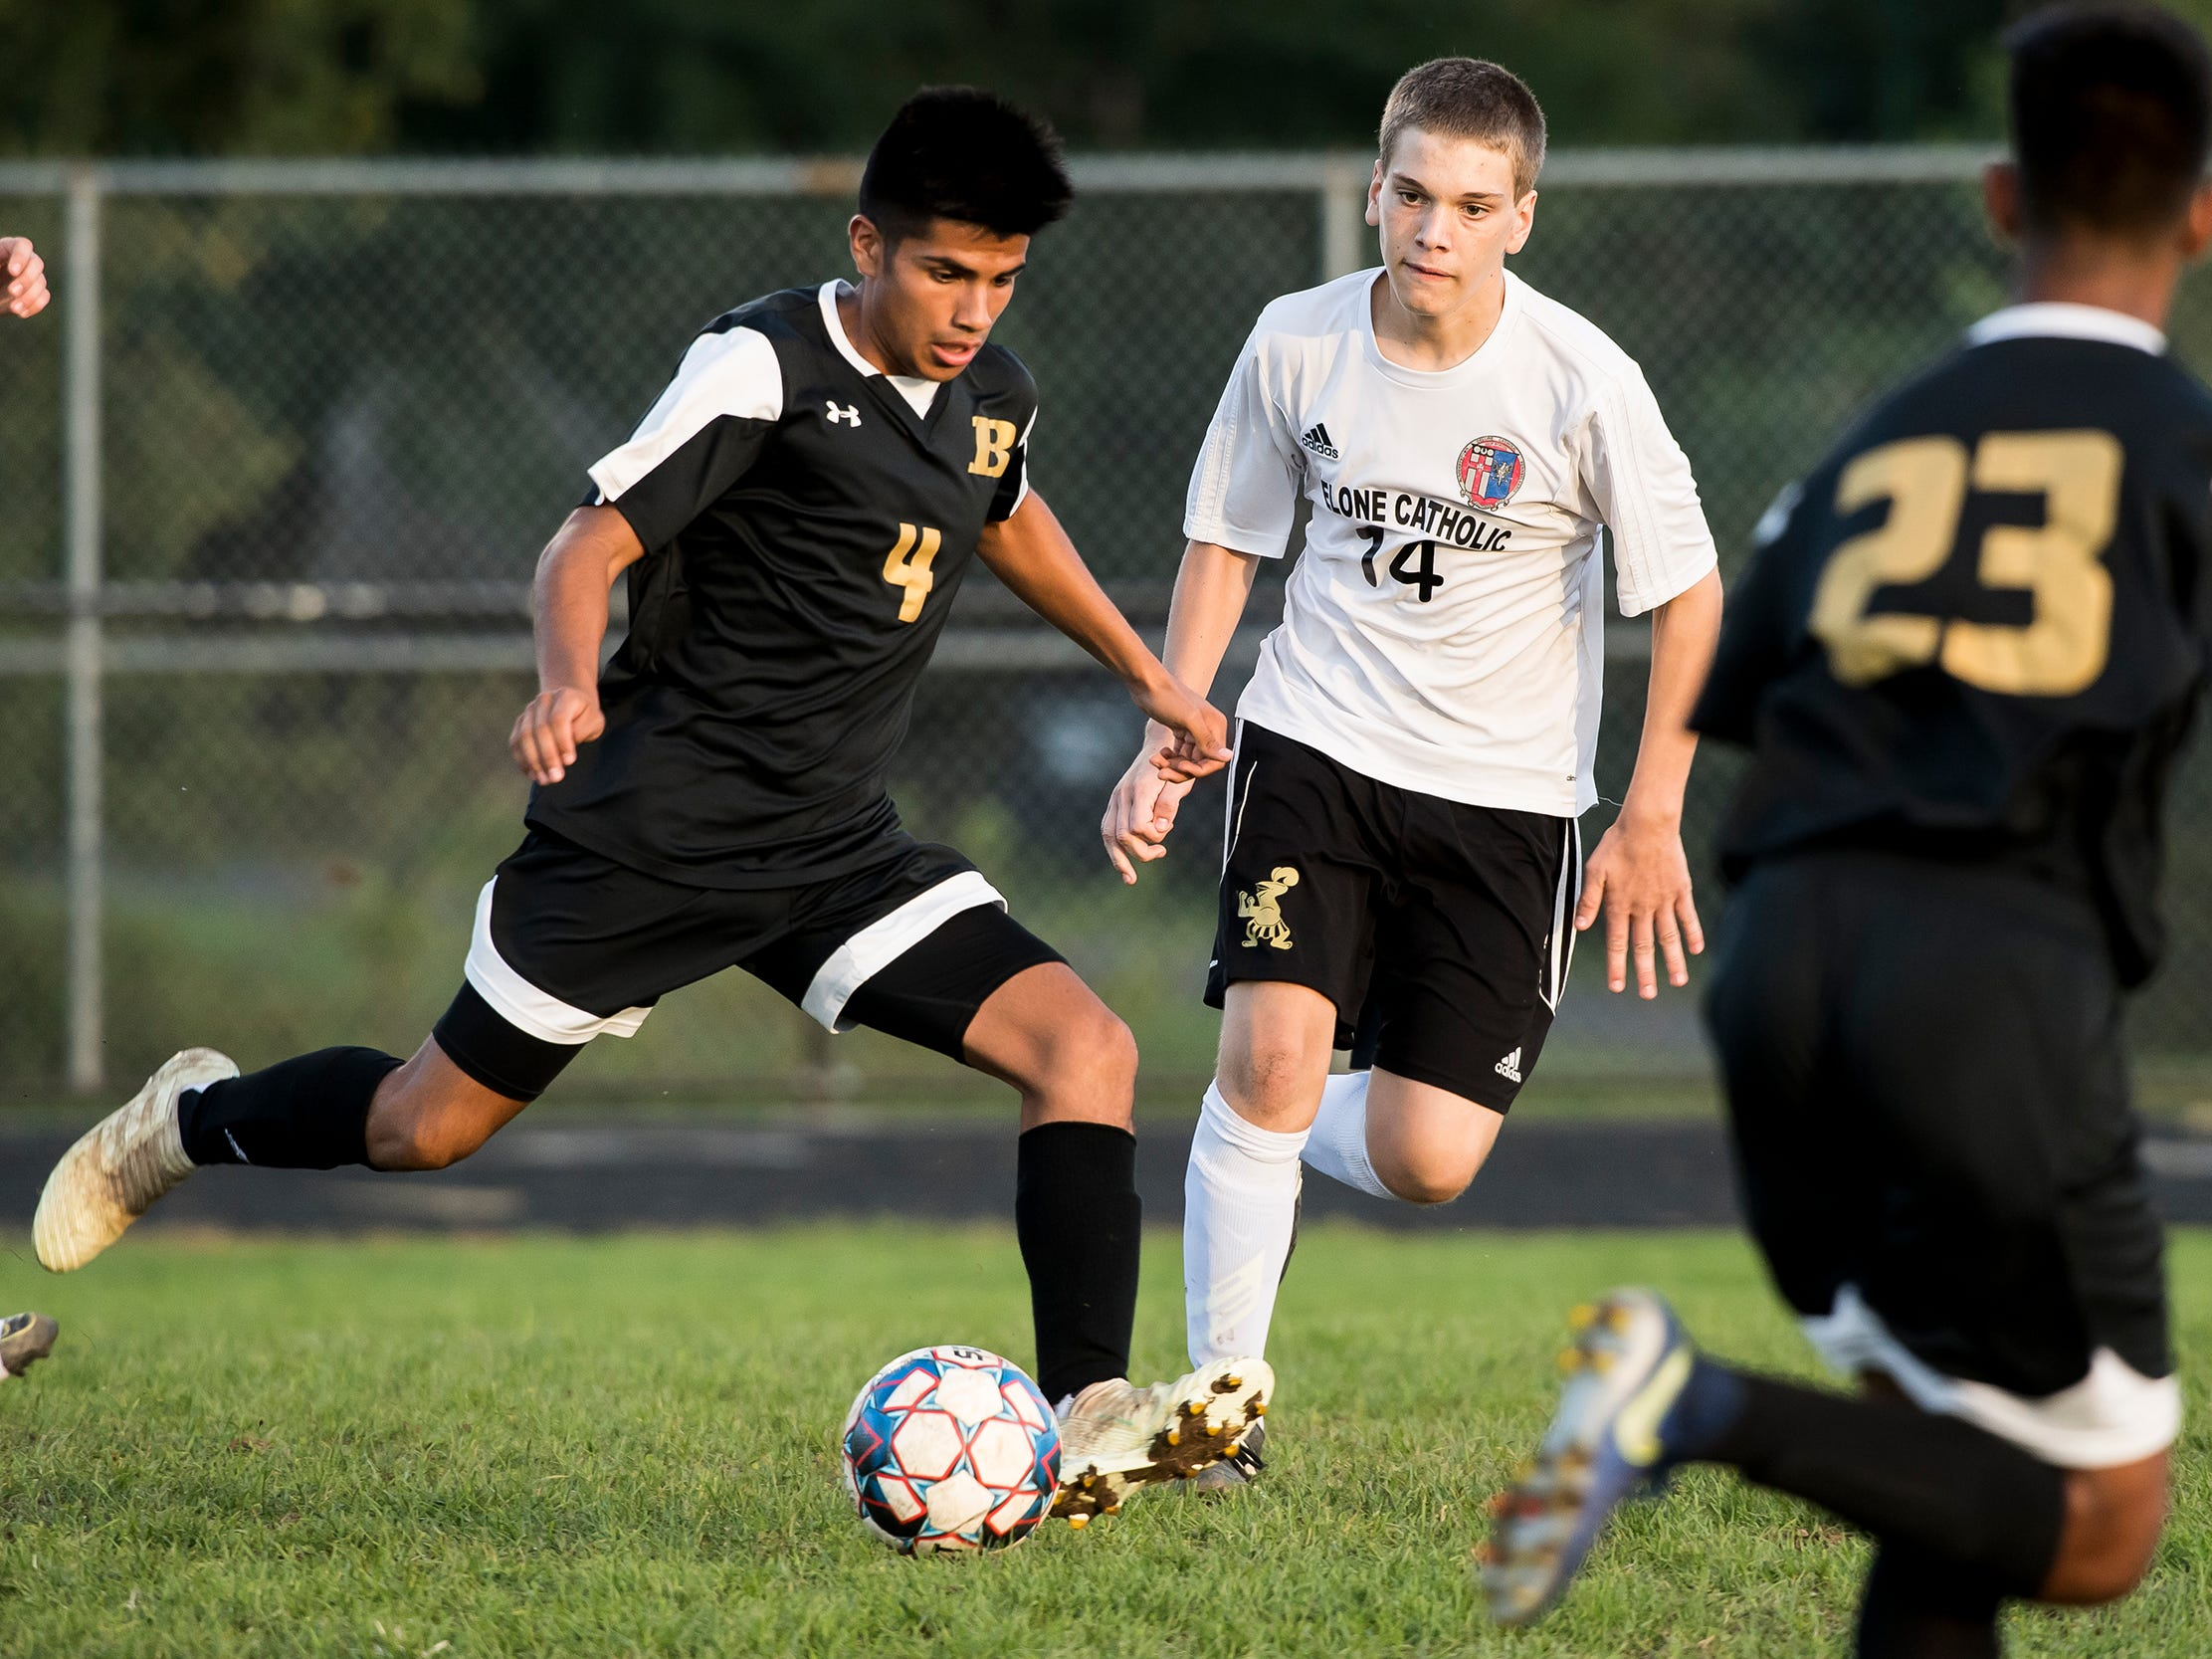 Biglerville's Lazaro Salazar Jr. (4) kicks the ball during a game against Delone Catholic on Wednesday, October 3, 2018. The Canners won 3-0.